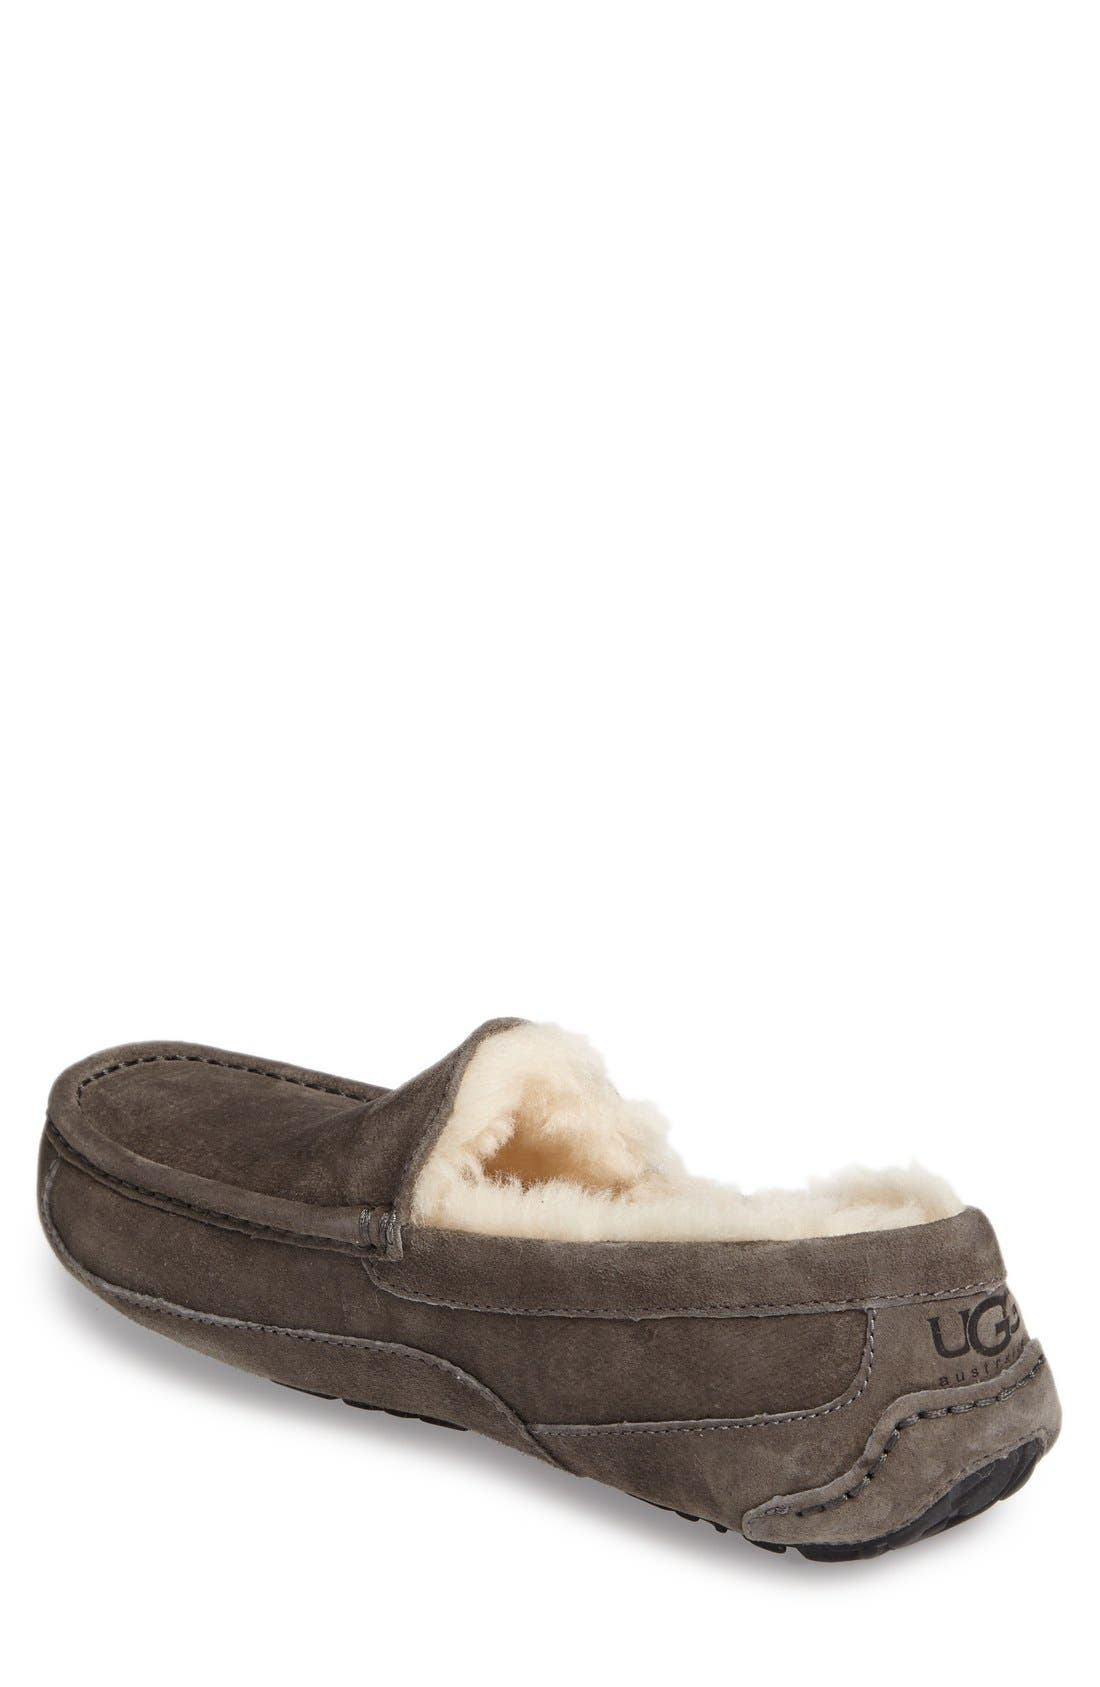 Ascot Suede Slipper,                             Alternate thumbnail 5, color,                             CHARCOAL